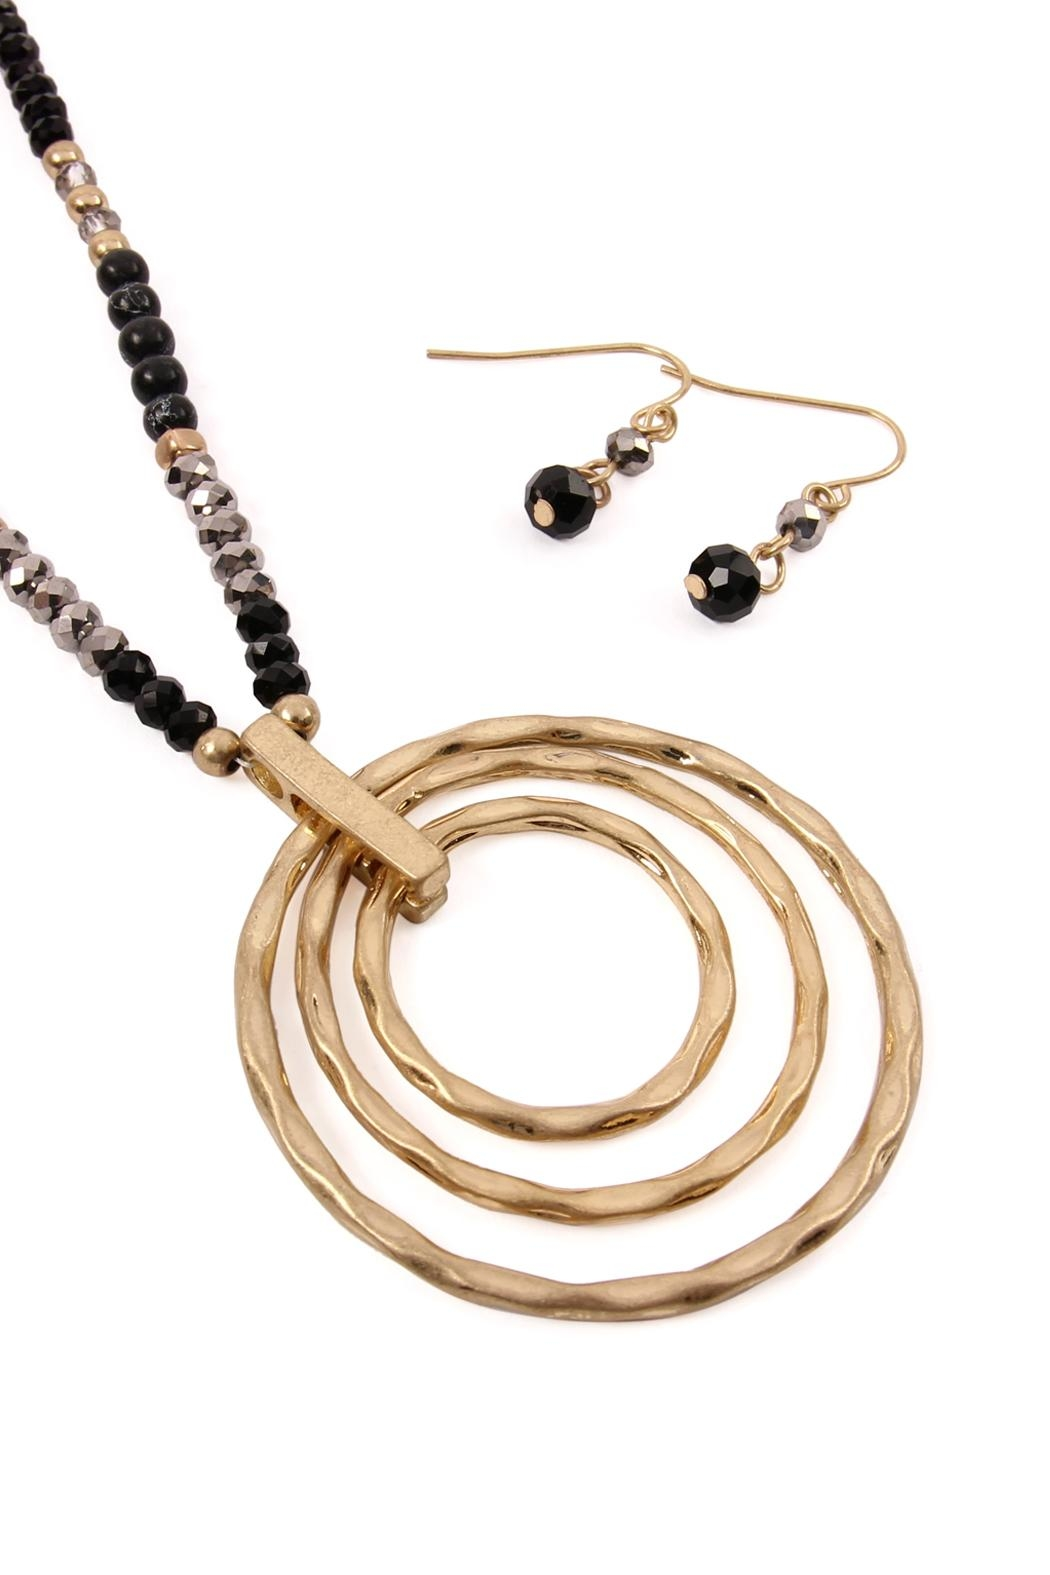 Riah Fashion Rondelle-Beads-Tri-Hoop Pendant-Necklace-And-Earrings-Set - Front Full Image